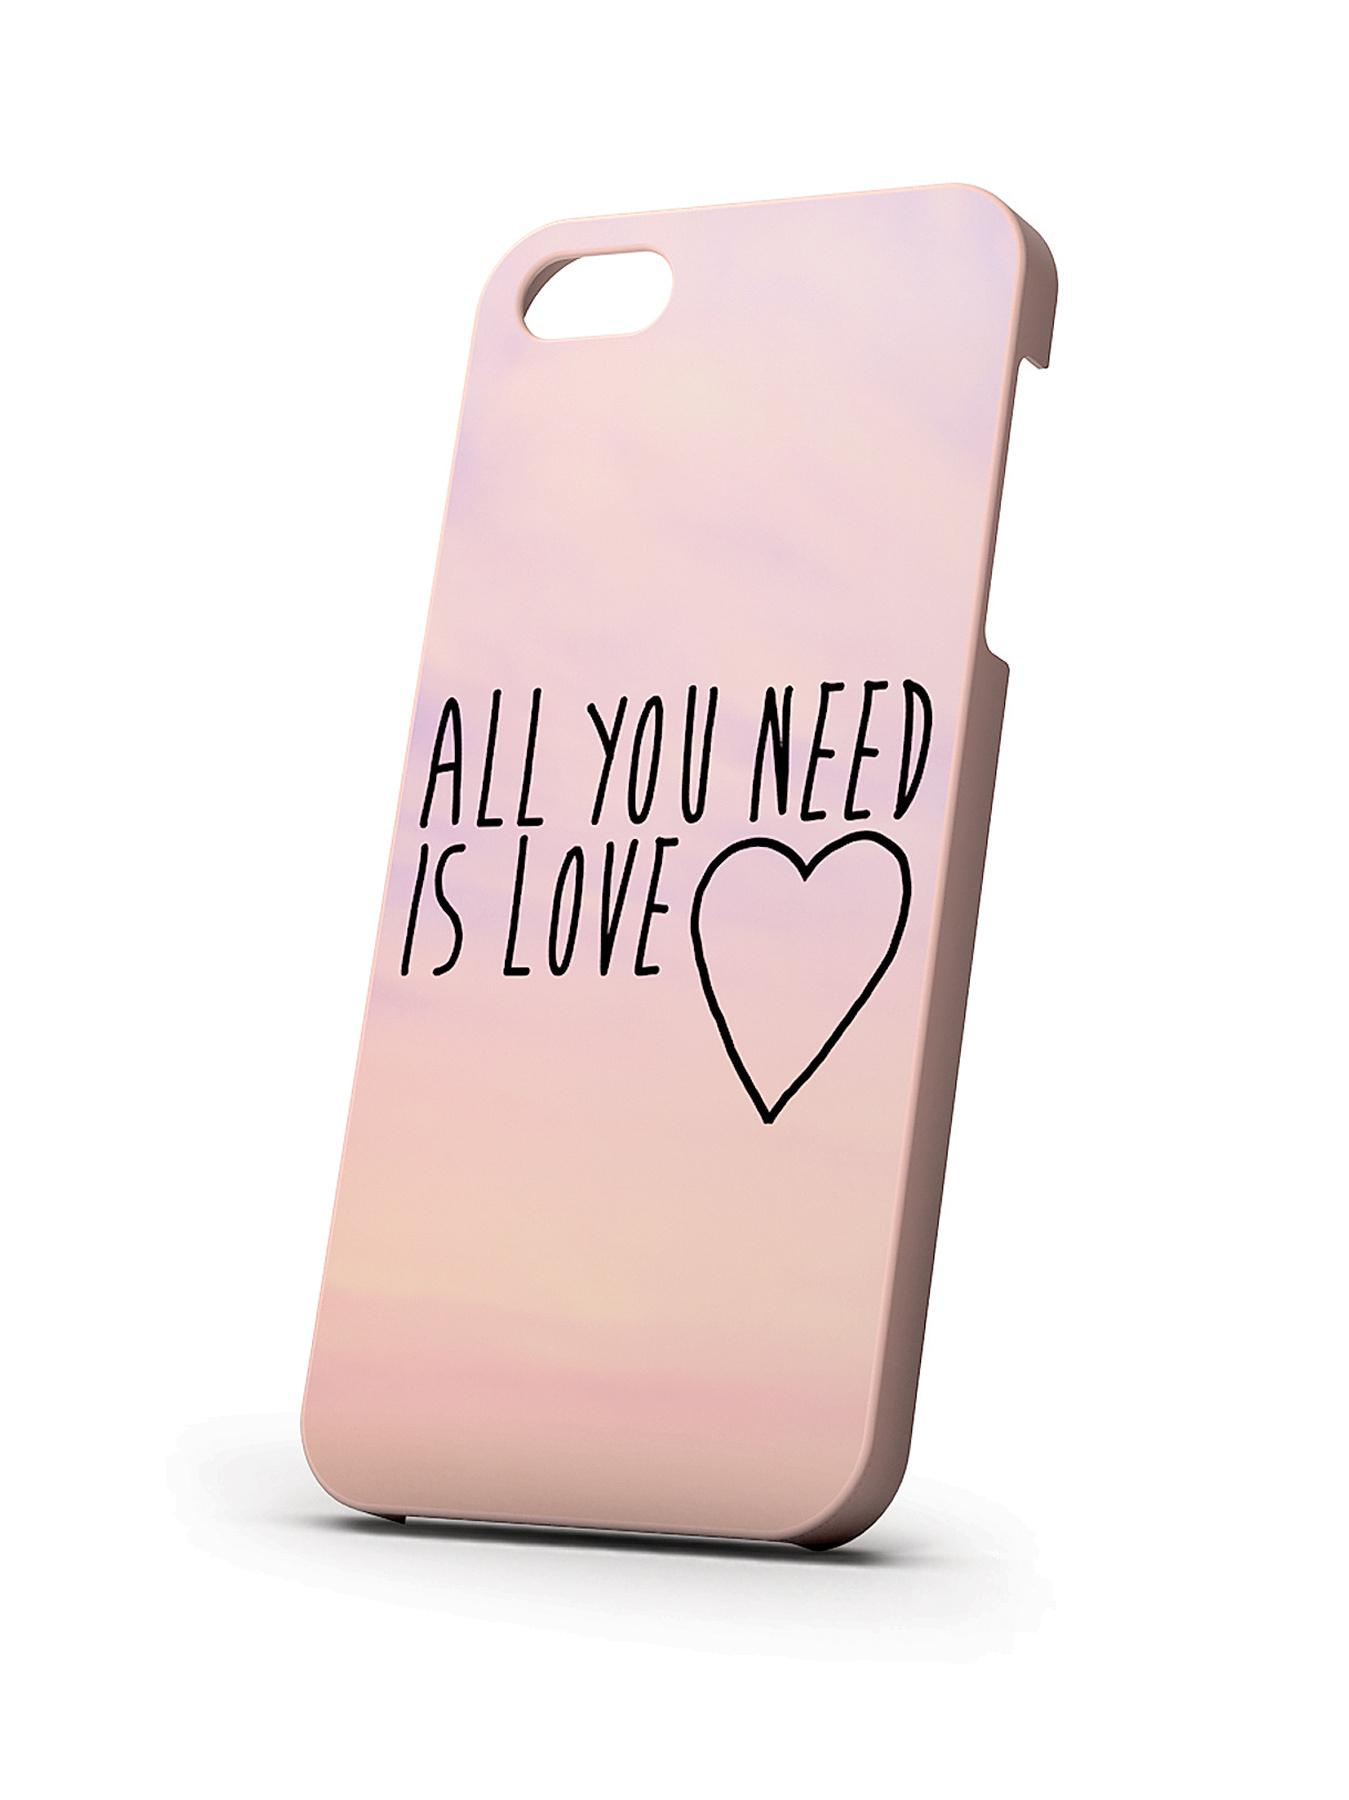 IPhone 5S All You Need Is Love Case at Littlewoods